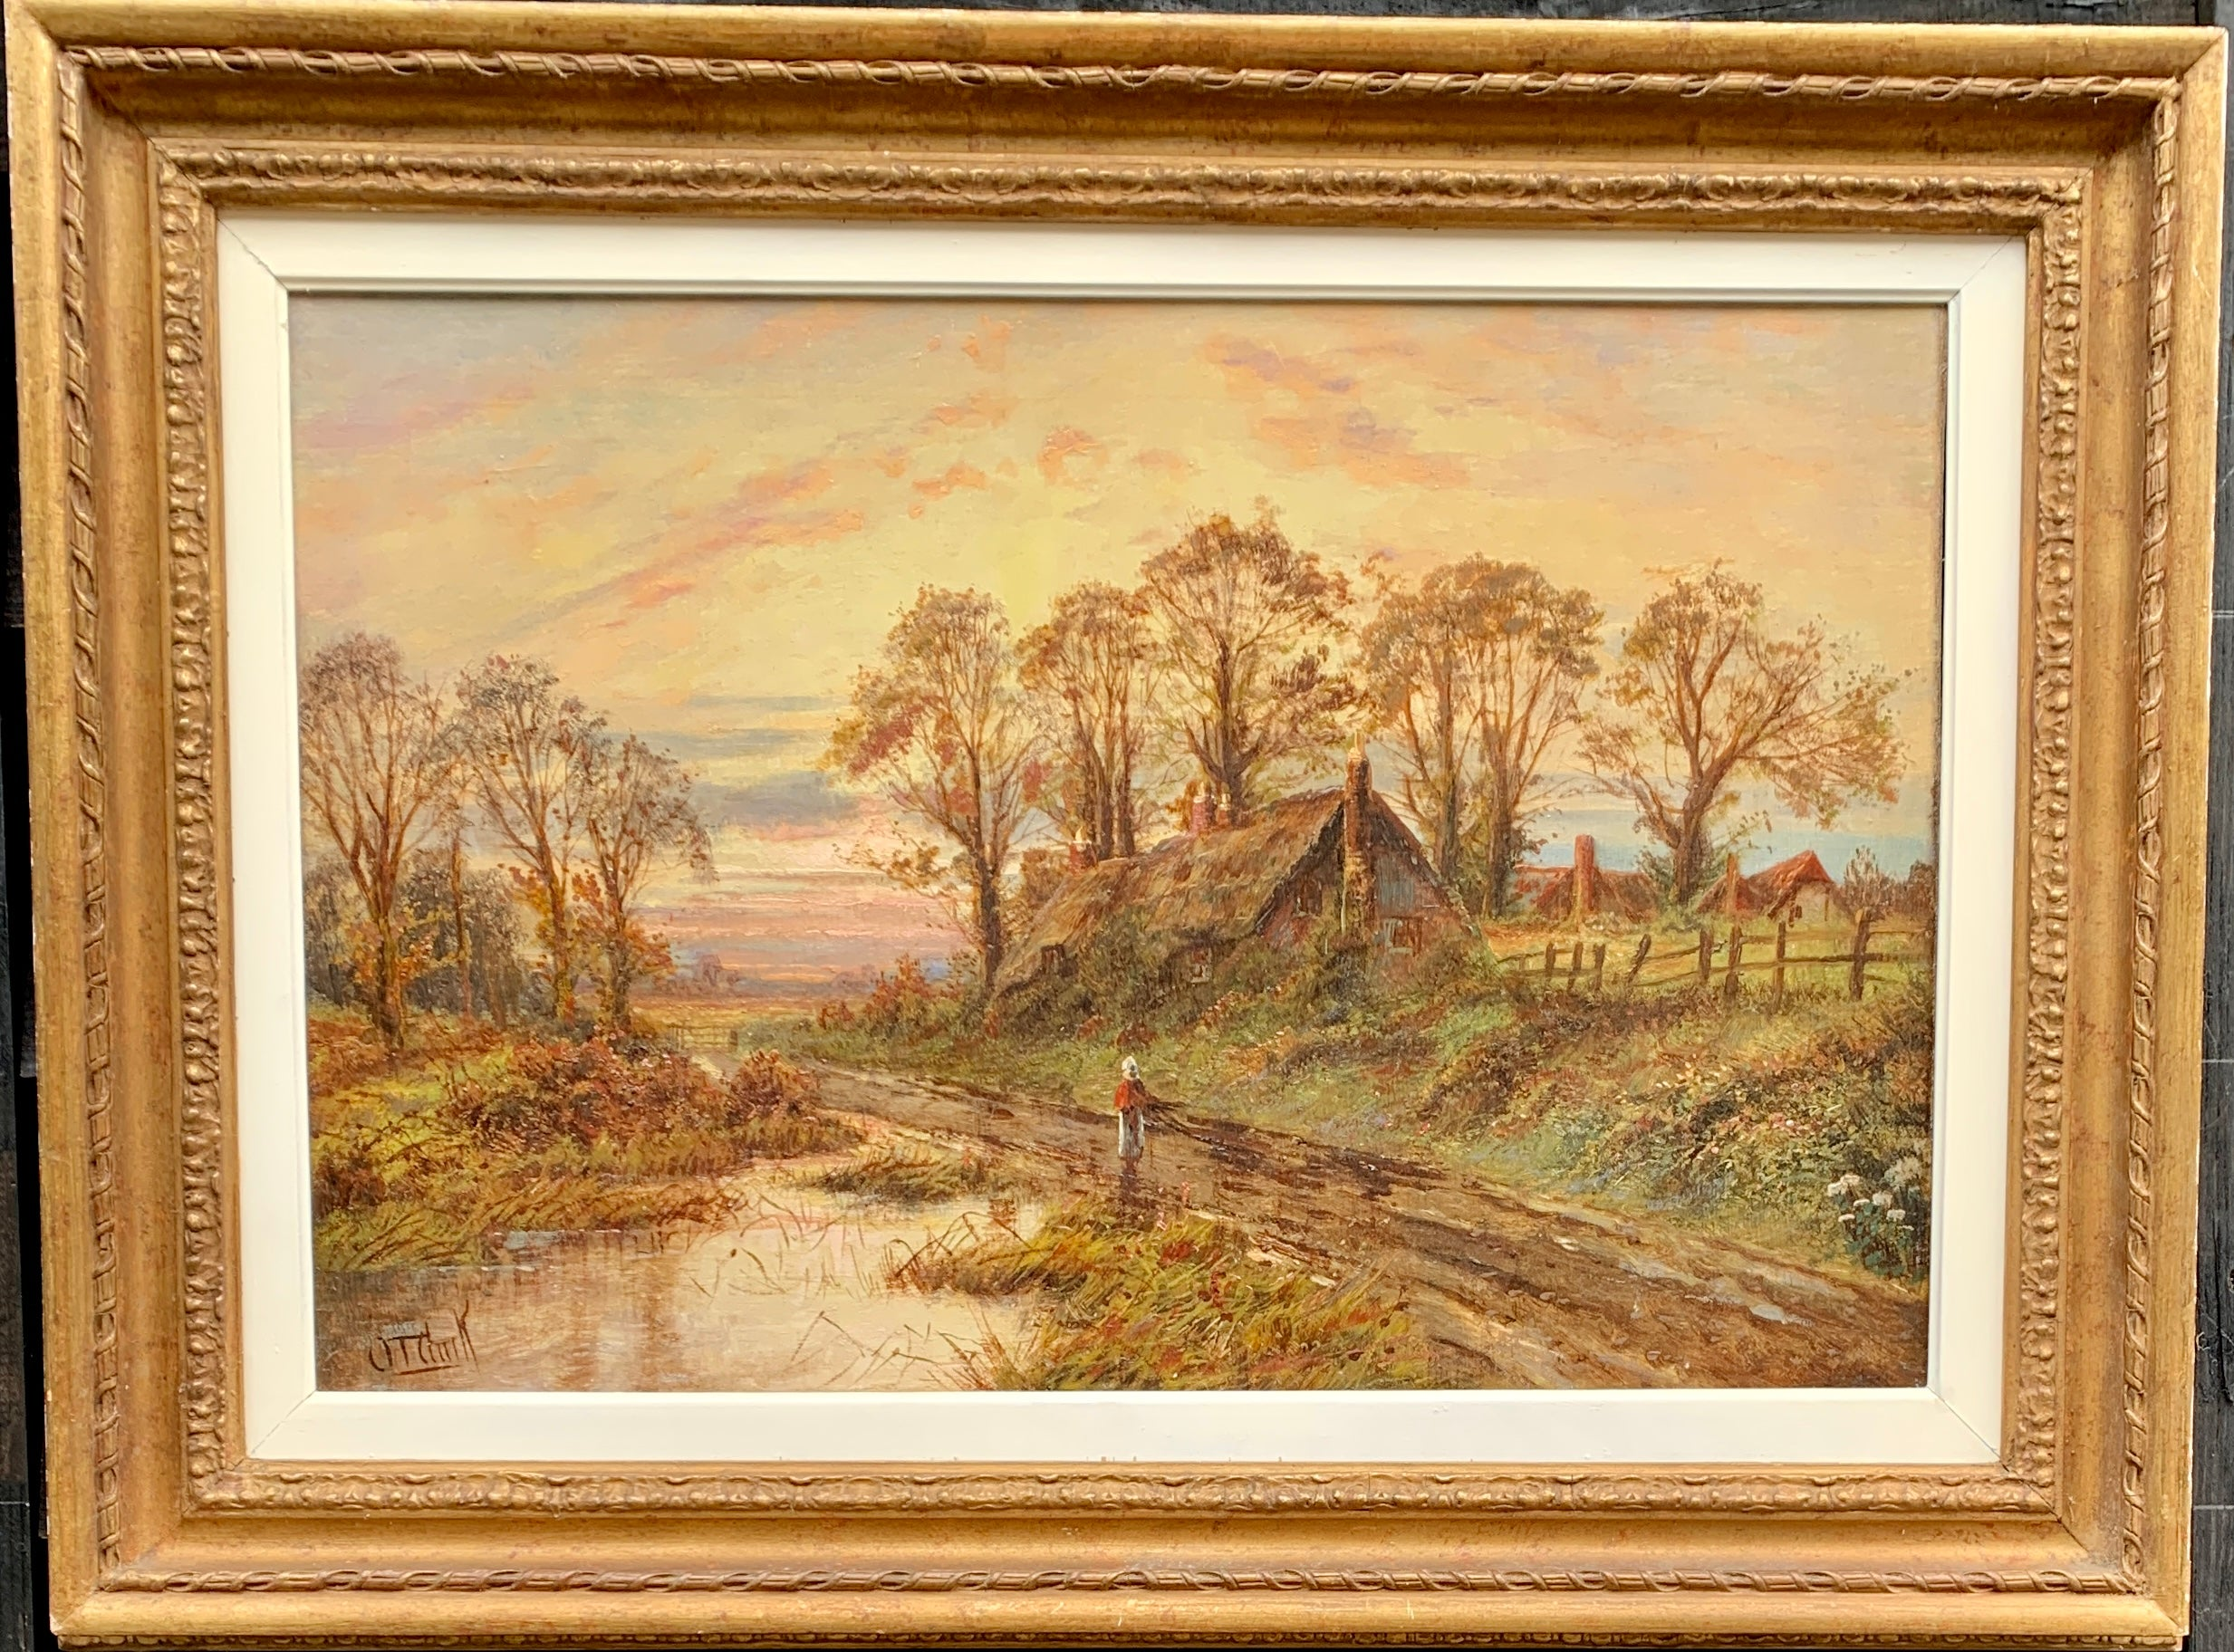 19th century Victorian English landscape with thatched cottage, figure at sunset